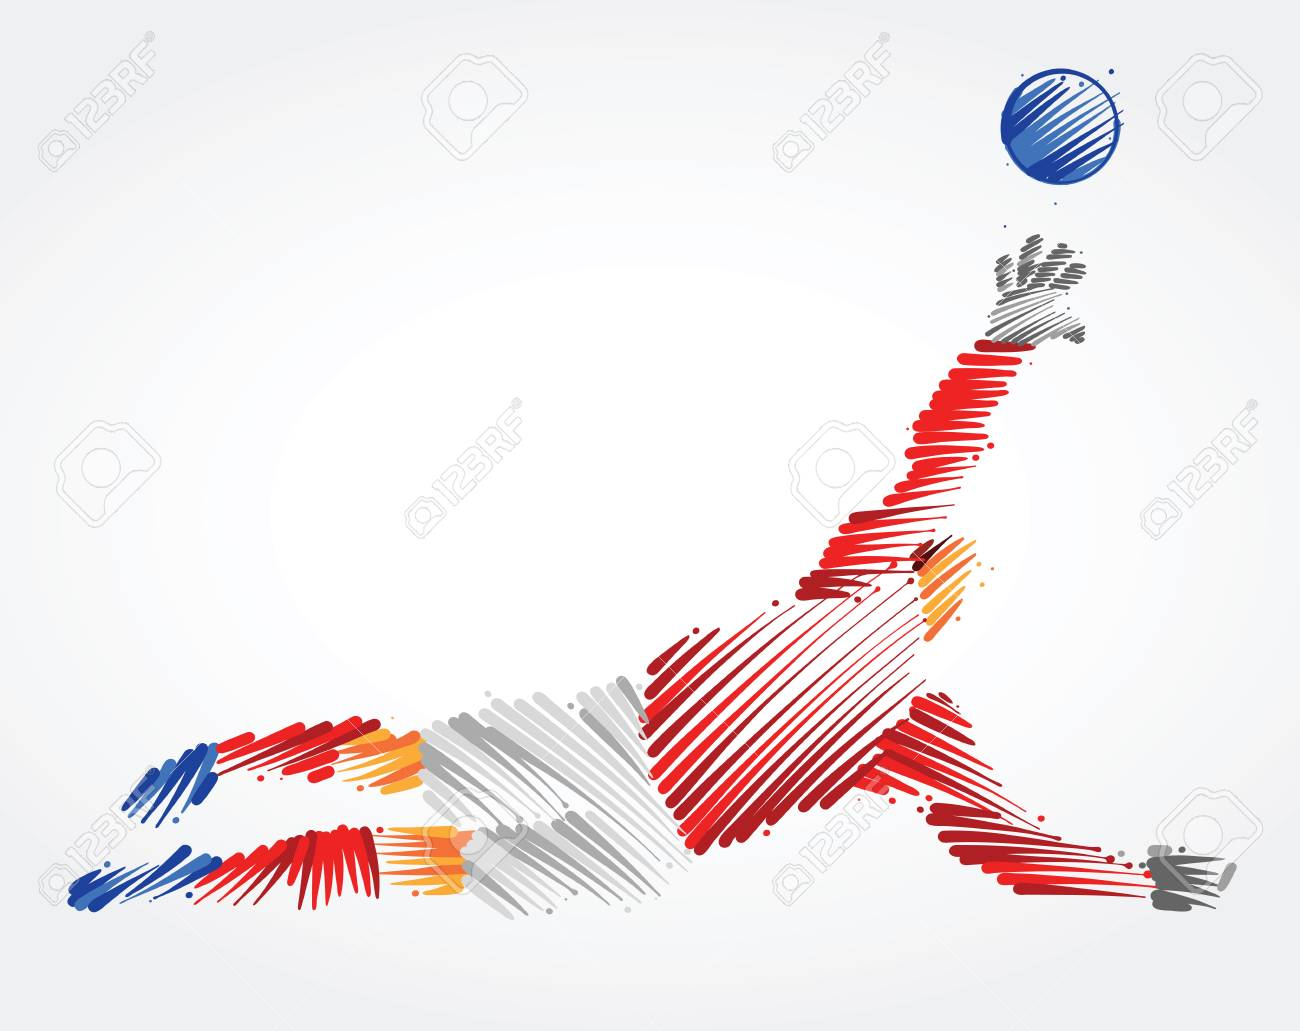 Russian goalkeeper jumping to catch the ball made of colorful brushstrokes on light background - 103854977